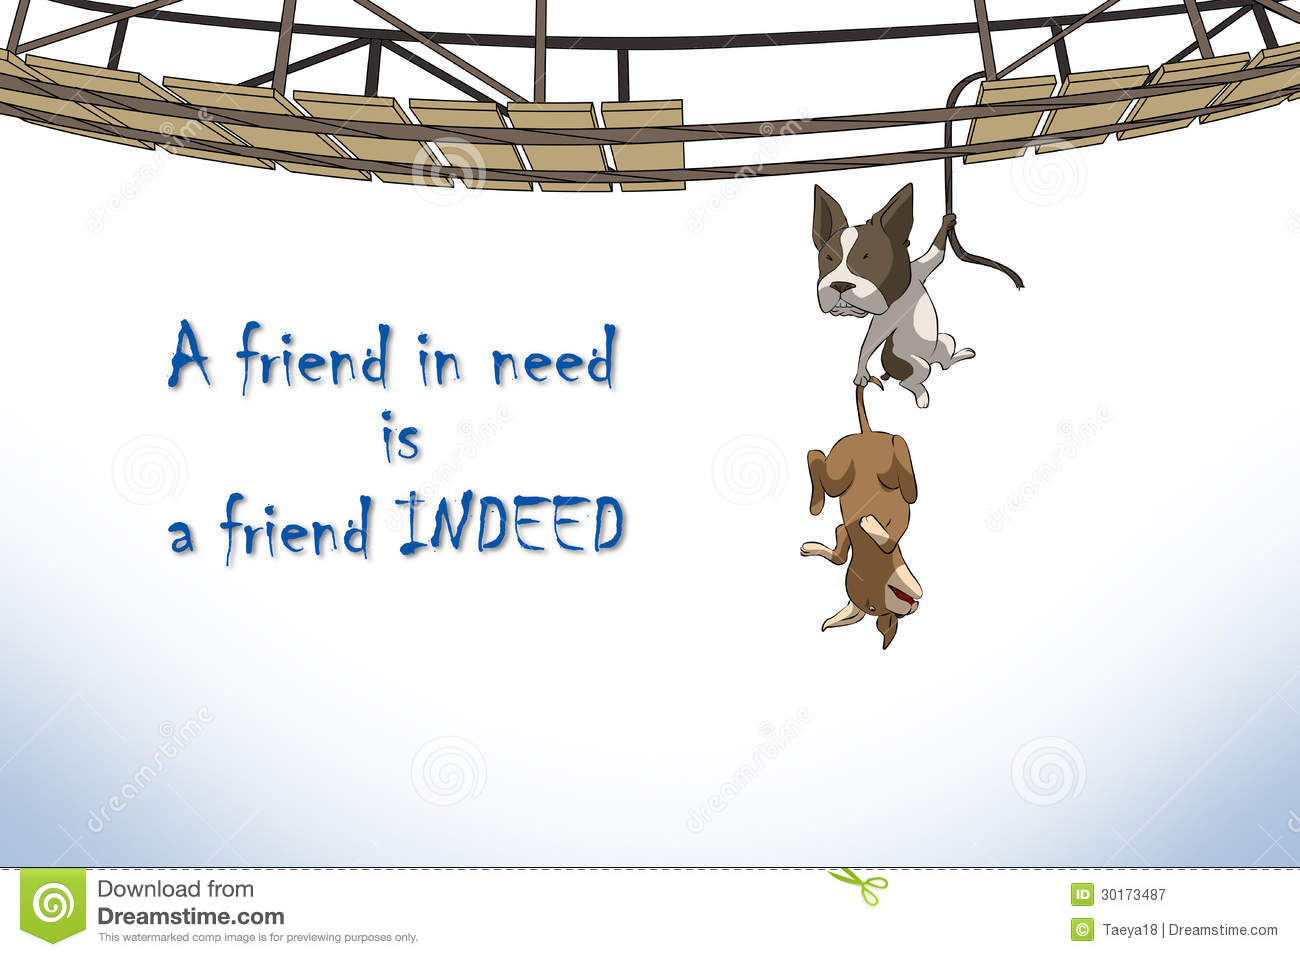 a friend in need is a friend indeed essay A friend in need is a friend indeed a friend in need is a friend indeed is an old saying or proverb that means a friend who helps out when we are in.